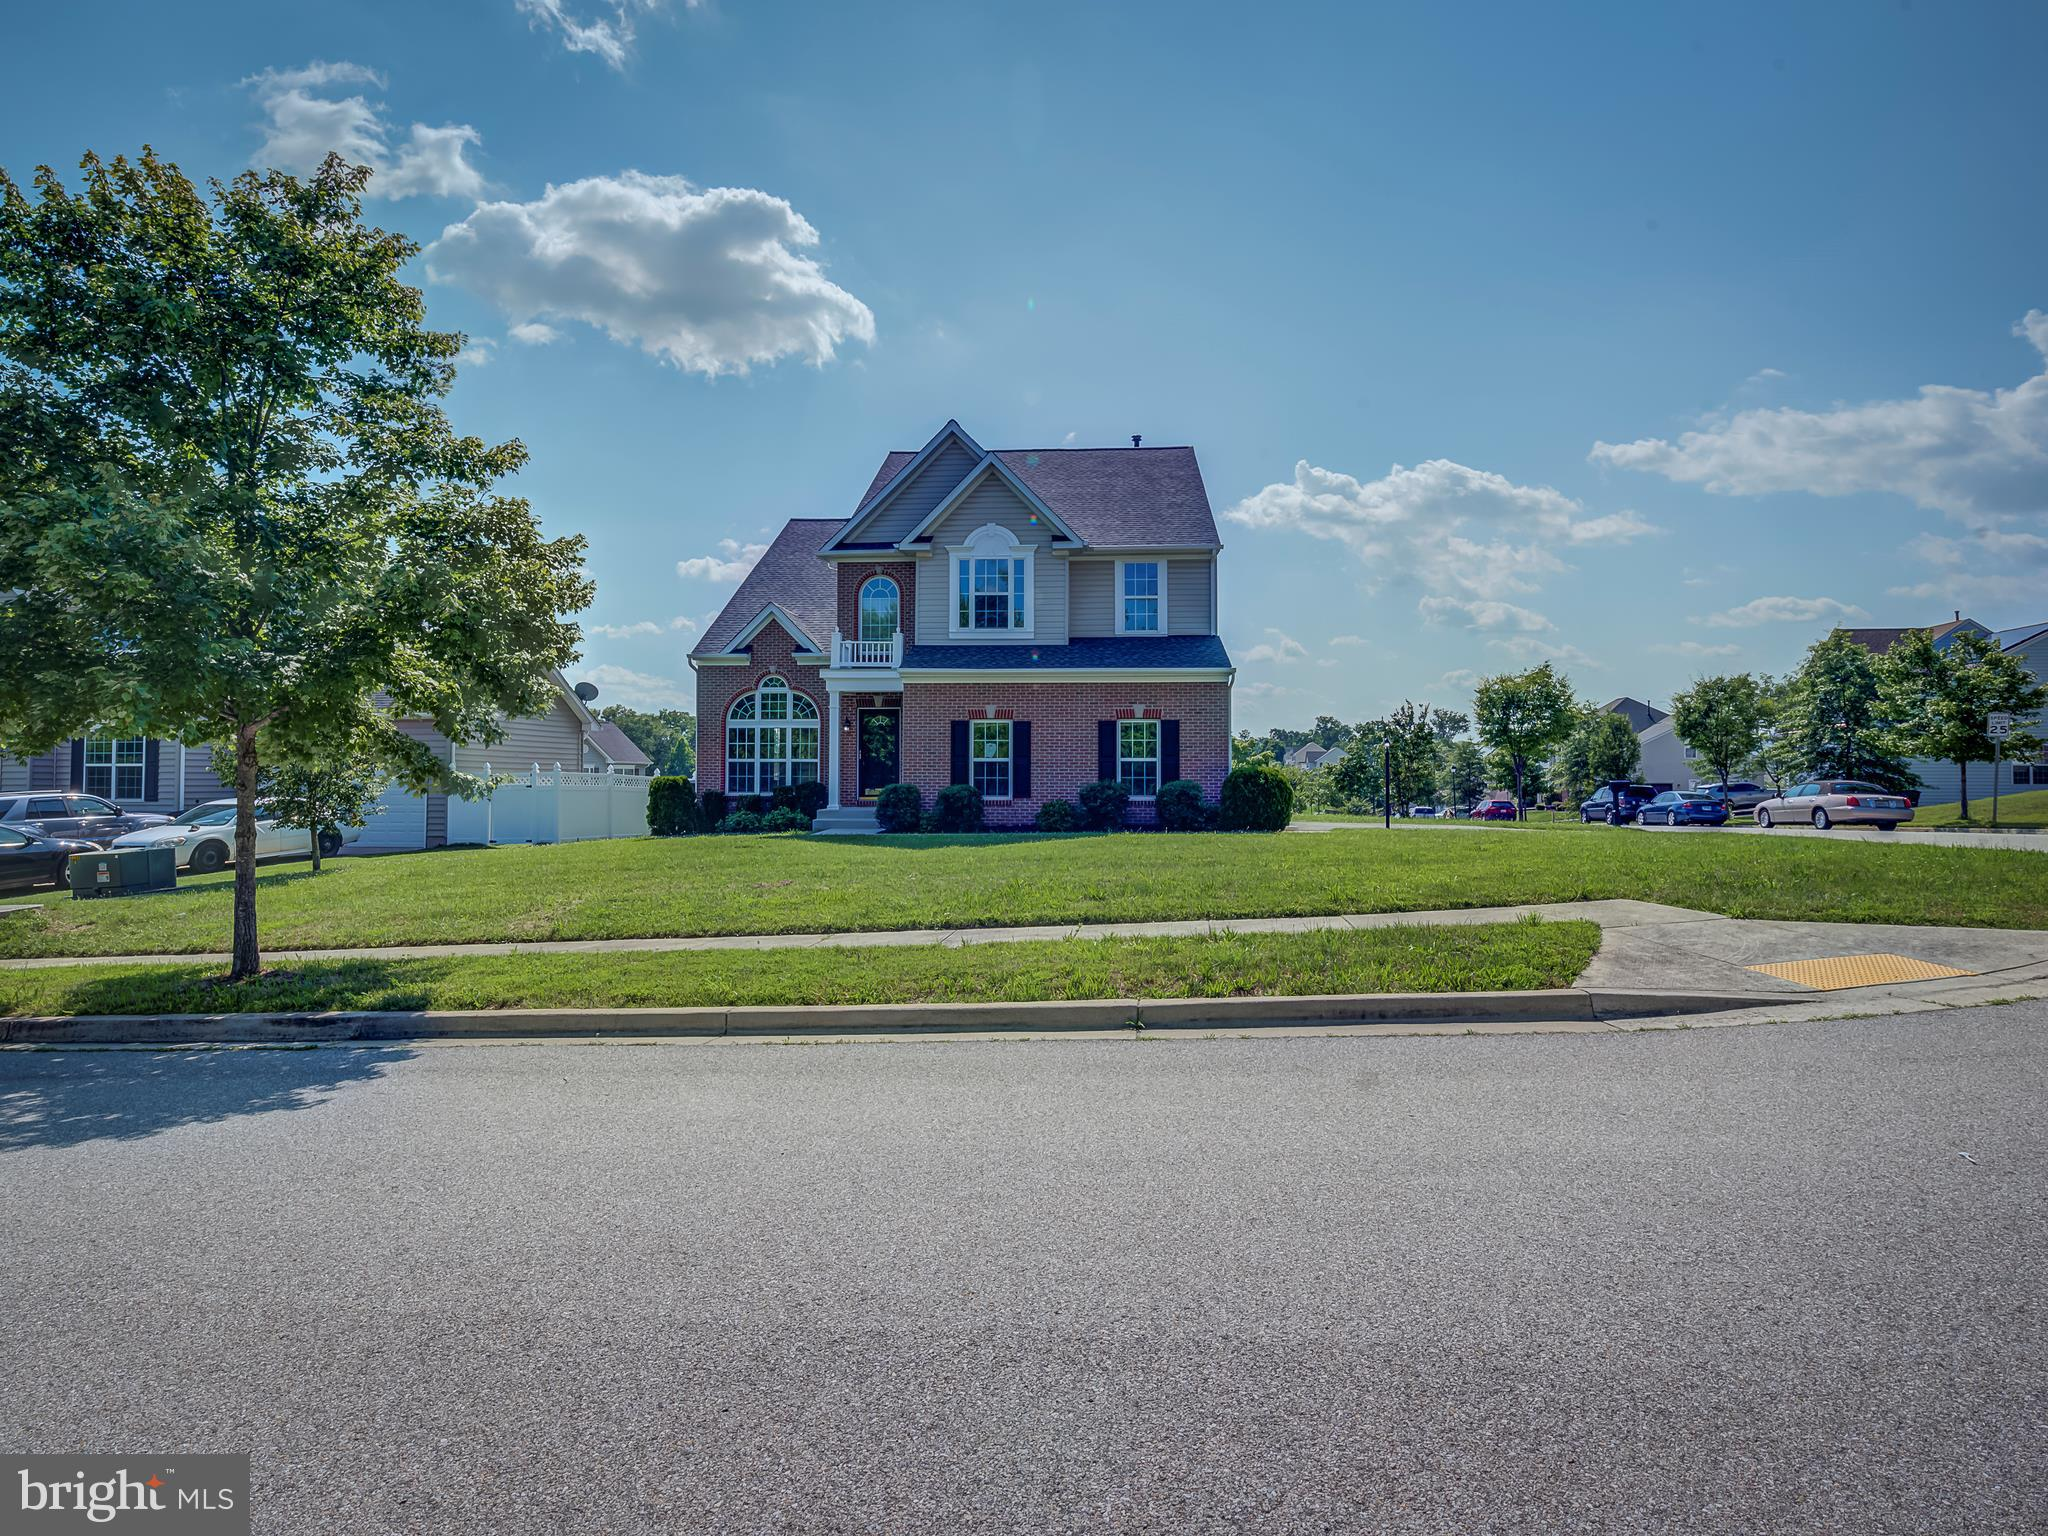 13227 5th St, Bowie, MD, 20720